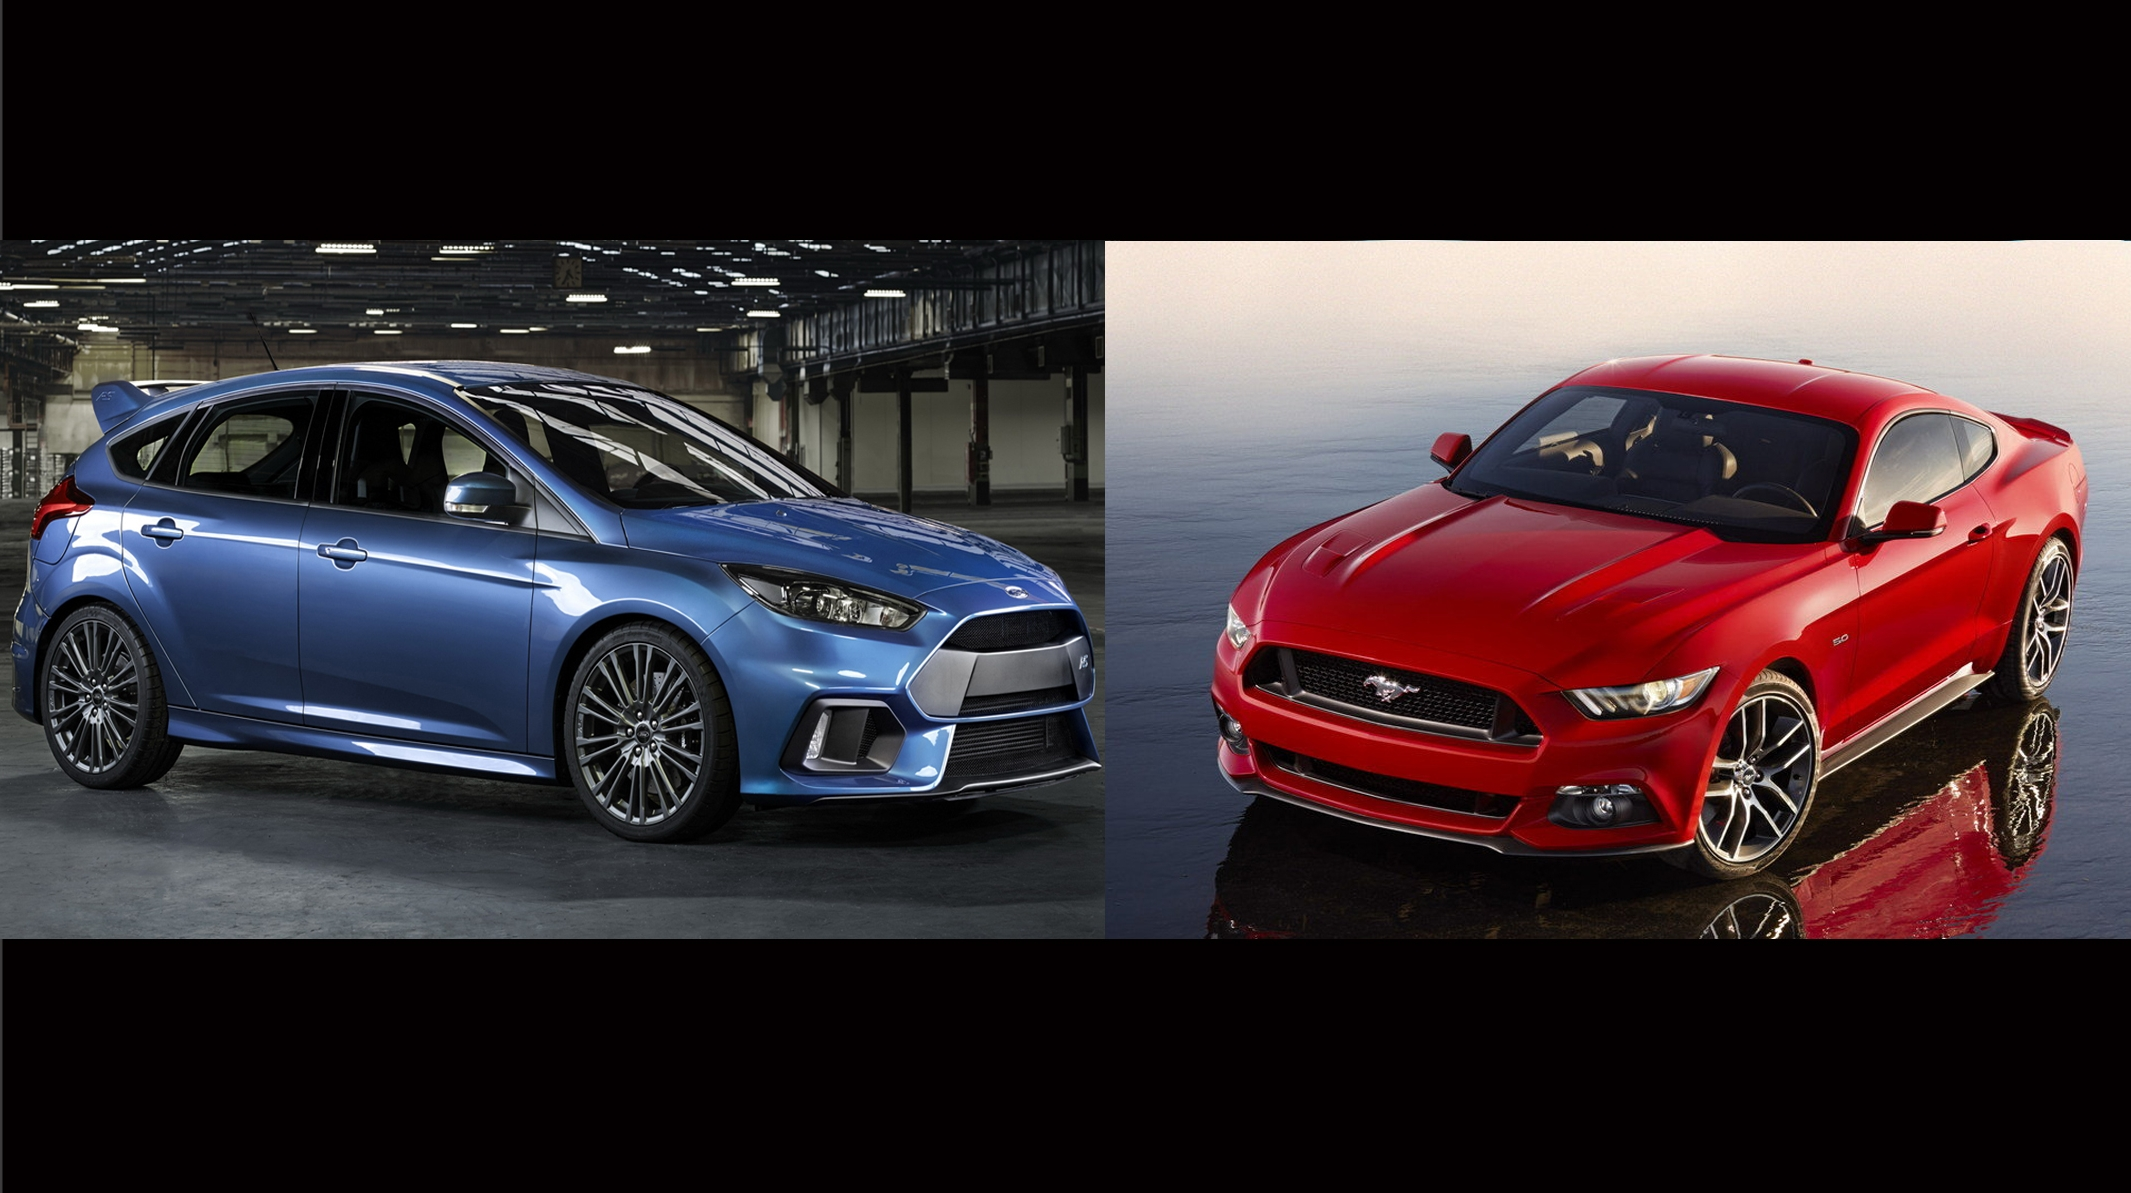 2016 ford focus rs vs 2015 ford mustang news gallery top speed. Black Bedroom Furniture Sets. Home Design Ideas